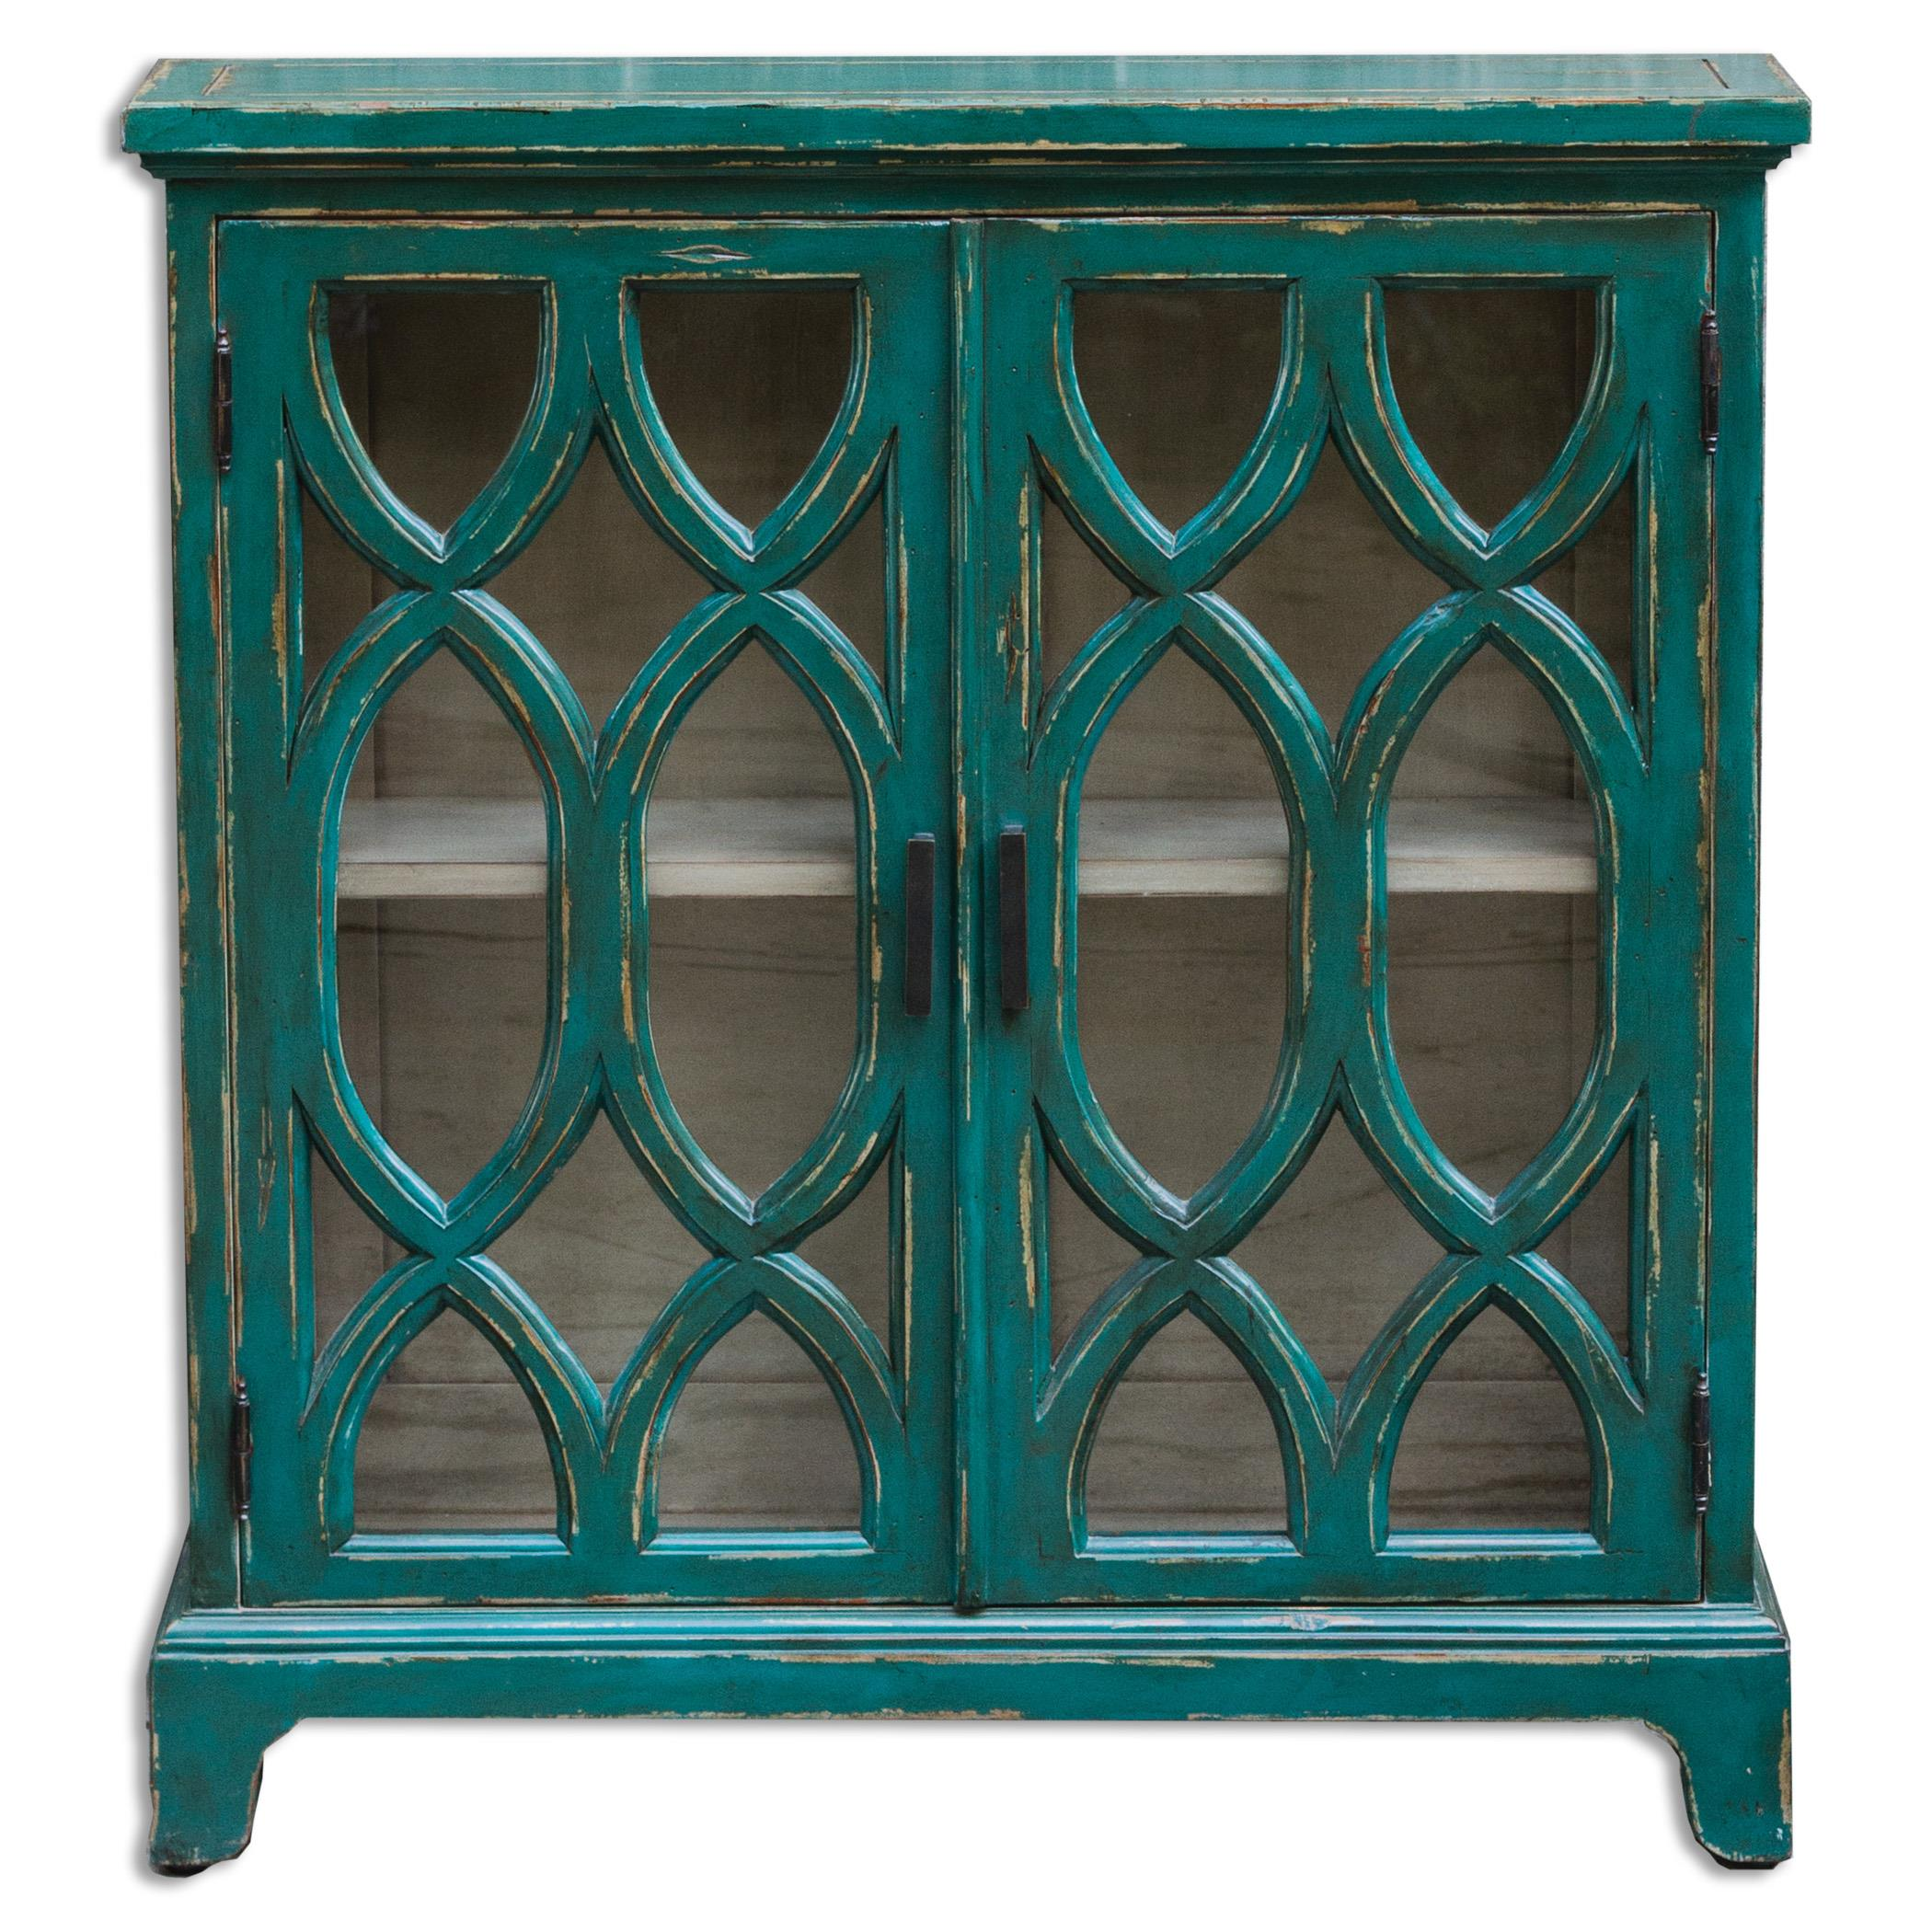 Uttermost Accent Furniture Theona Azure Blue Console Cabinet - Item Number: 25648